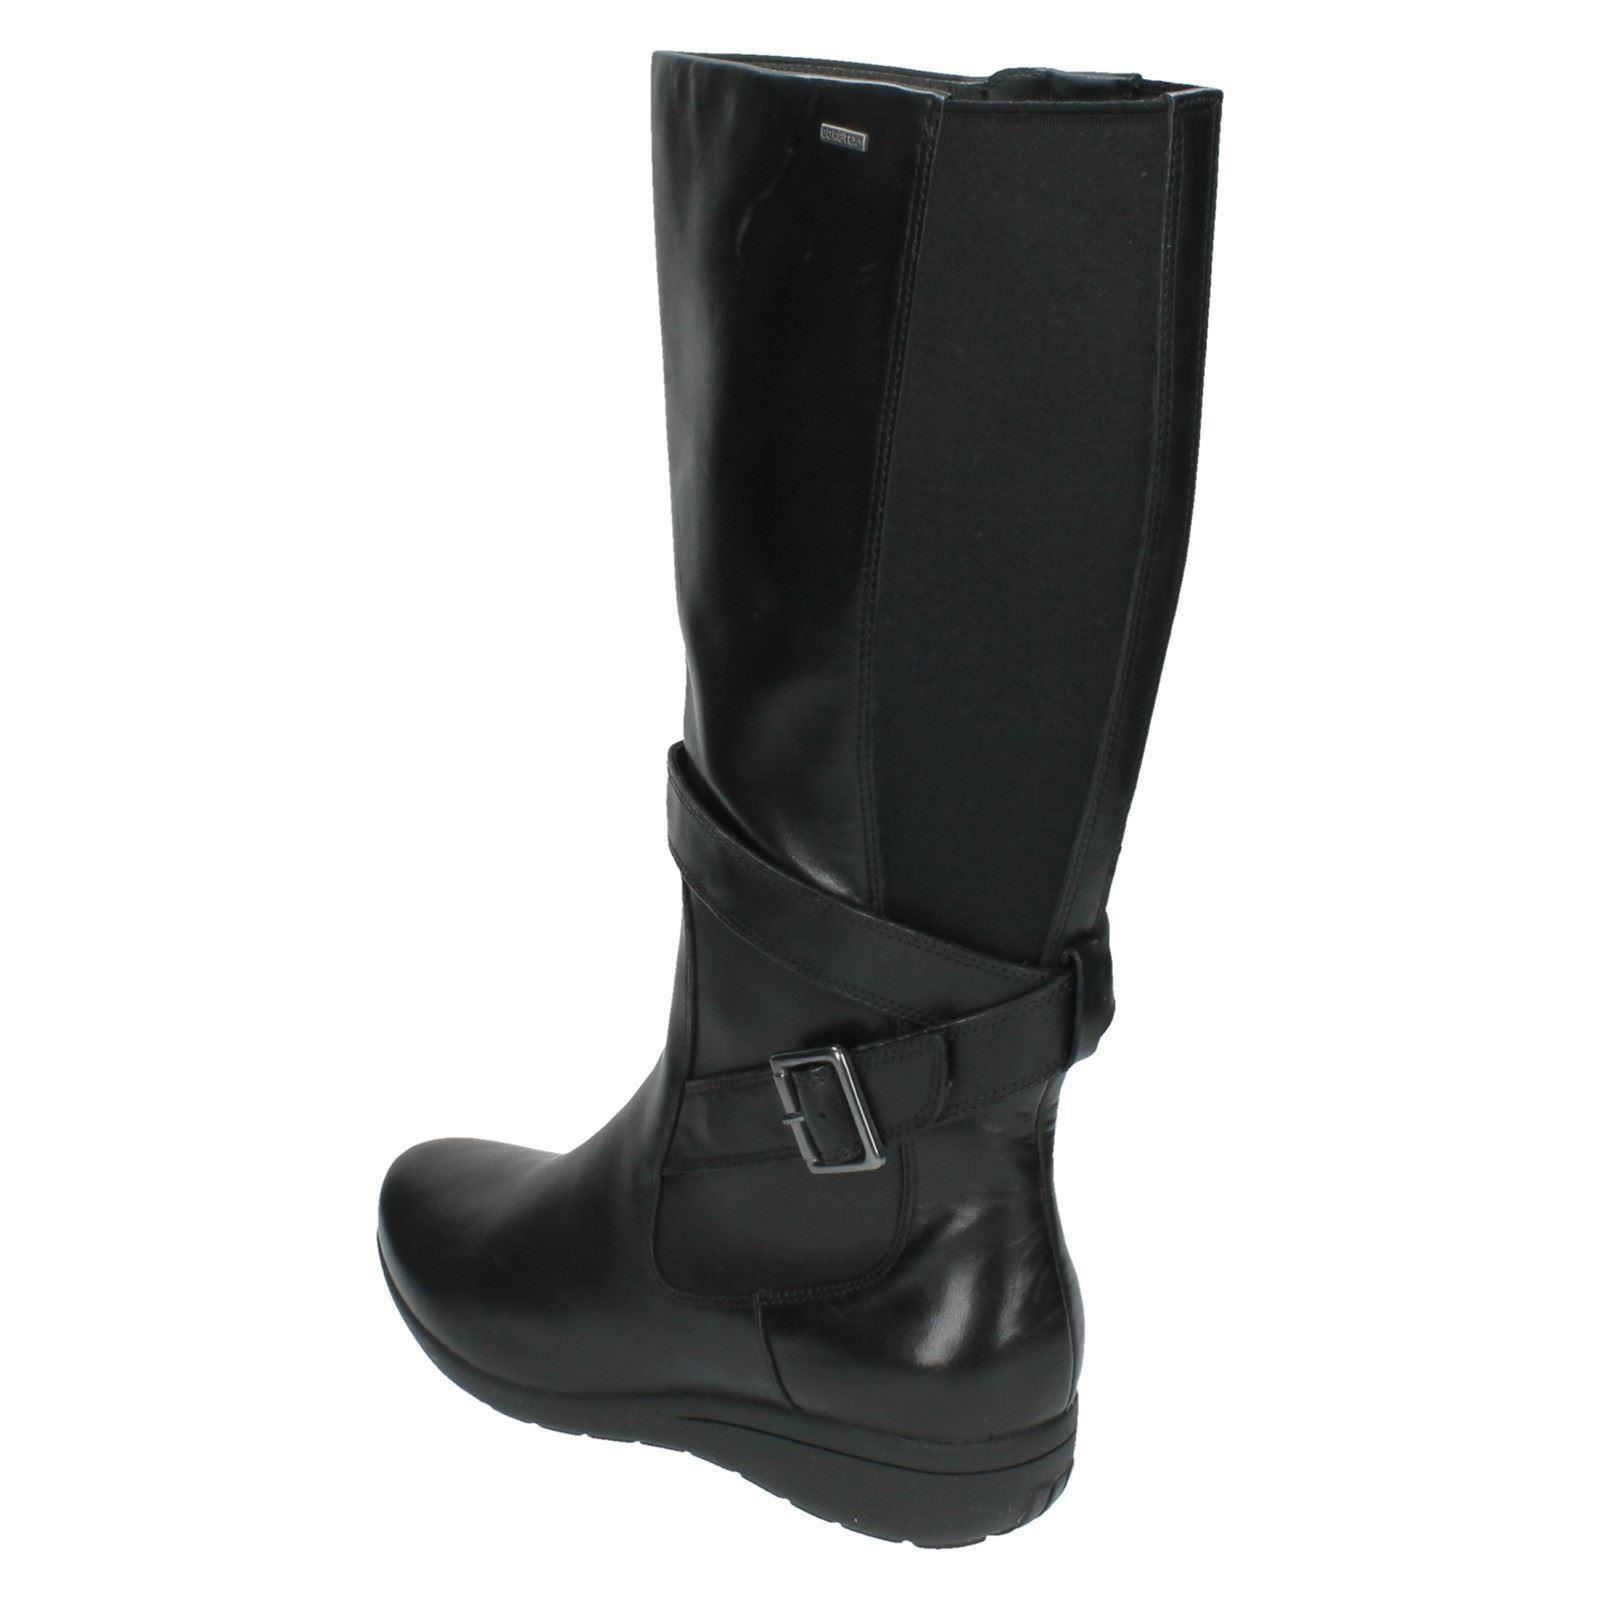 Ladies clarks gore tex high leg boots 39 mild fresco 39 ebay for Clarks mural fresco boots